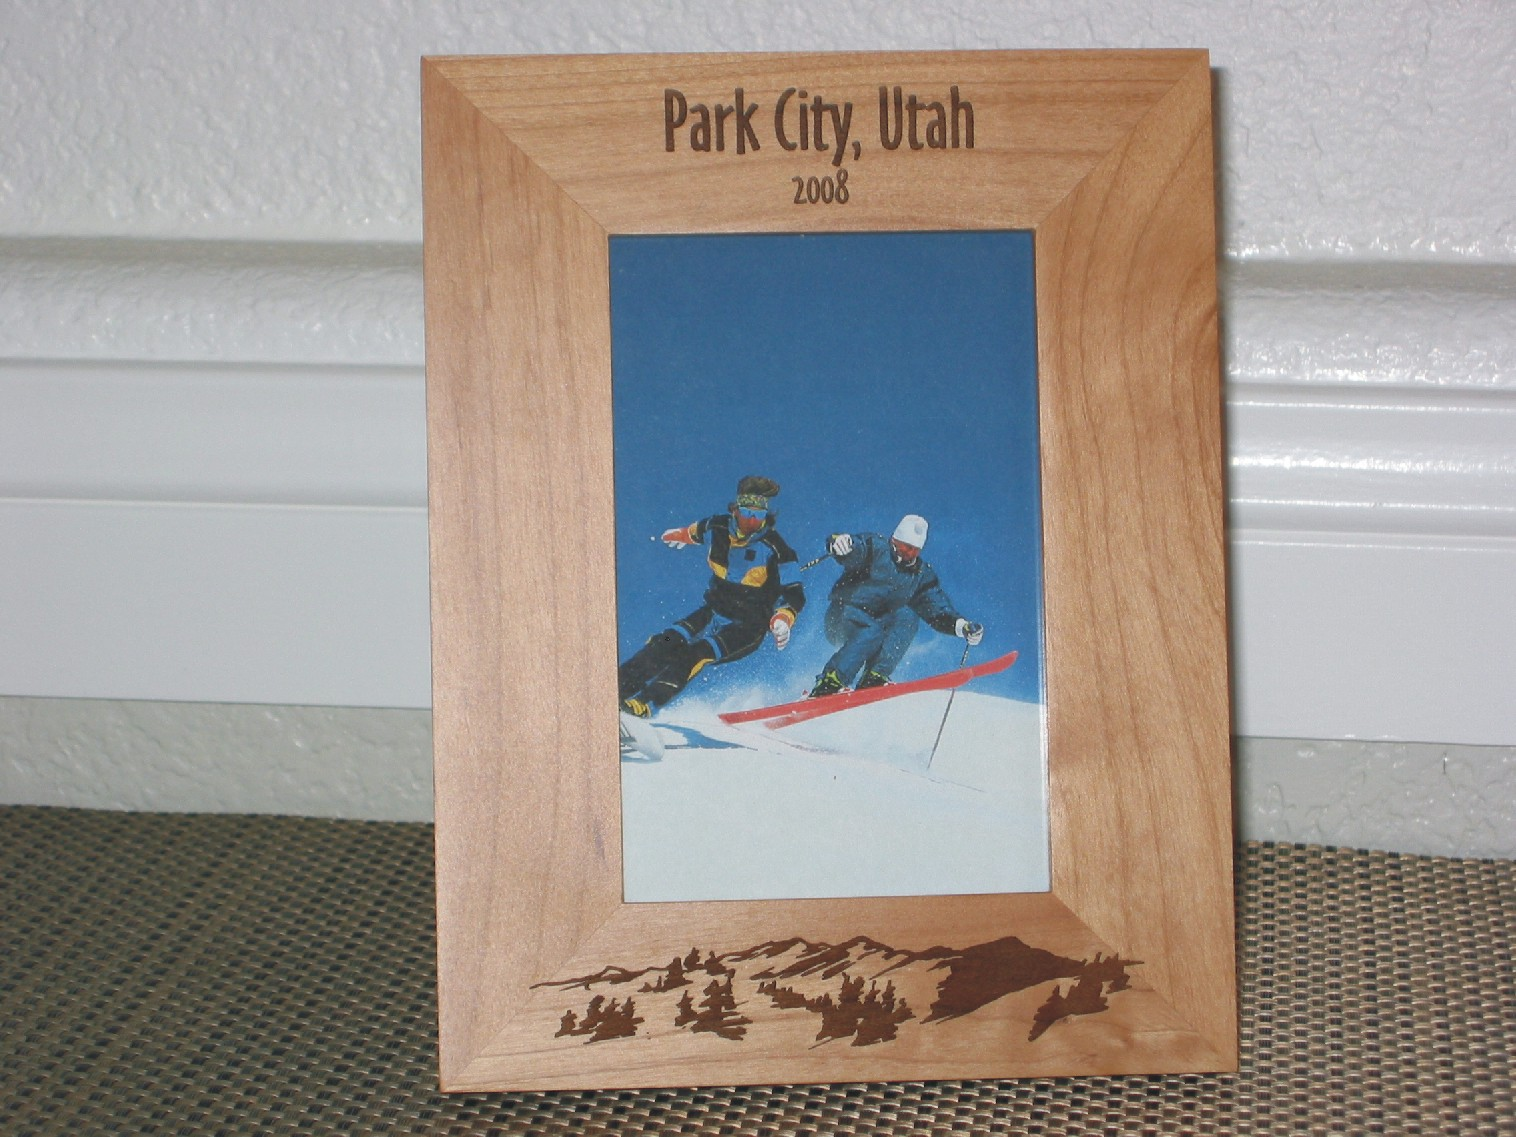 Stylish Park City Utah Frame Personalized Frame Laser Engraved Mountains Park City Utah Frame Personalized Frame Laser Engraved Personalized Frames 8x10 Personalized Frames Cheap photos Personalized Picture Frames